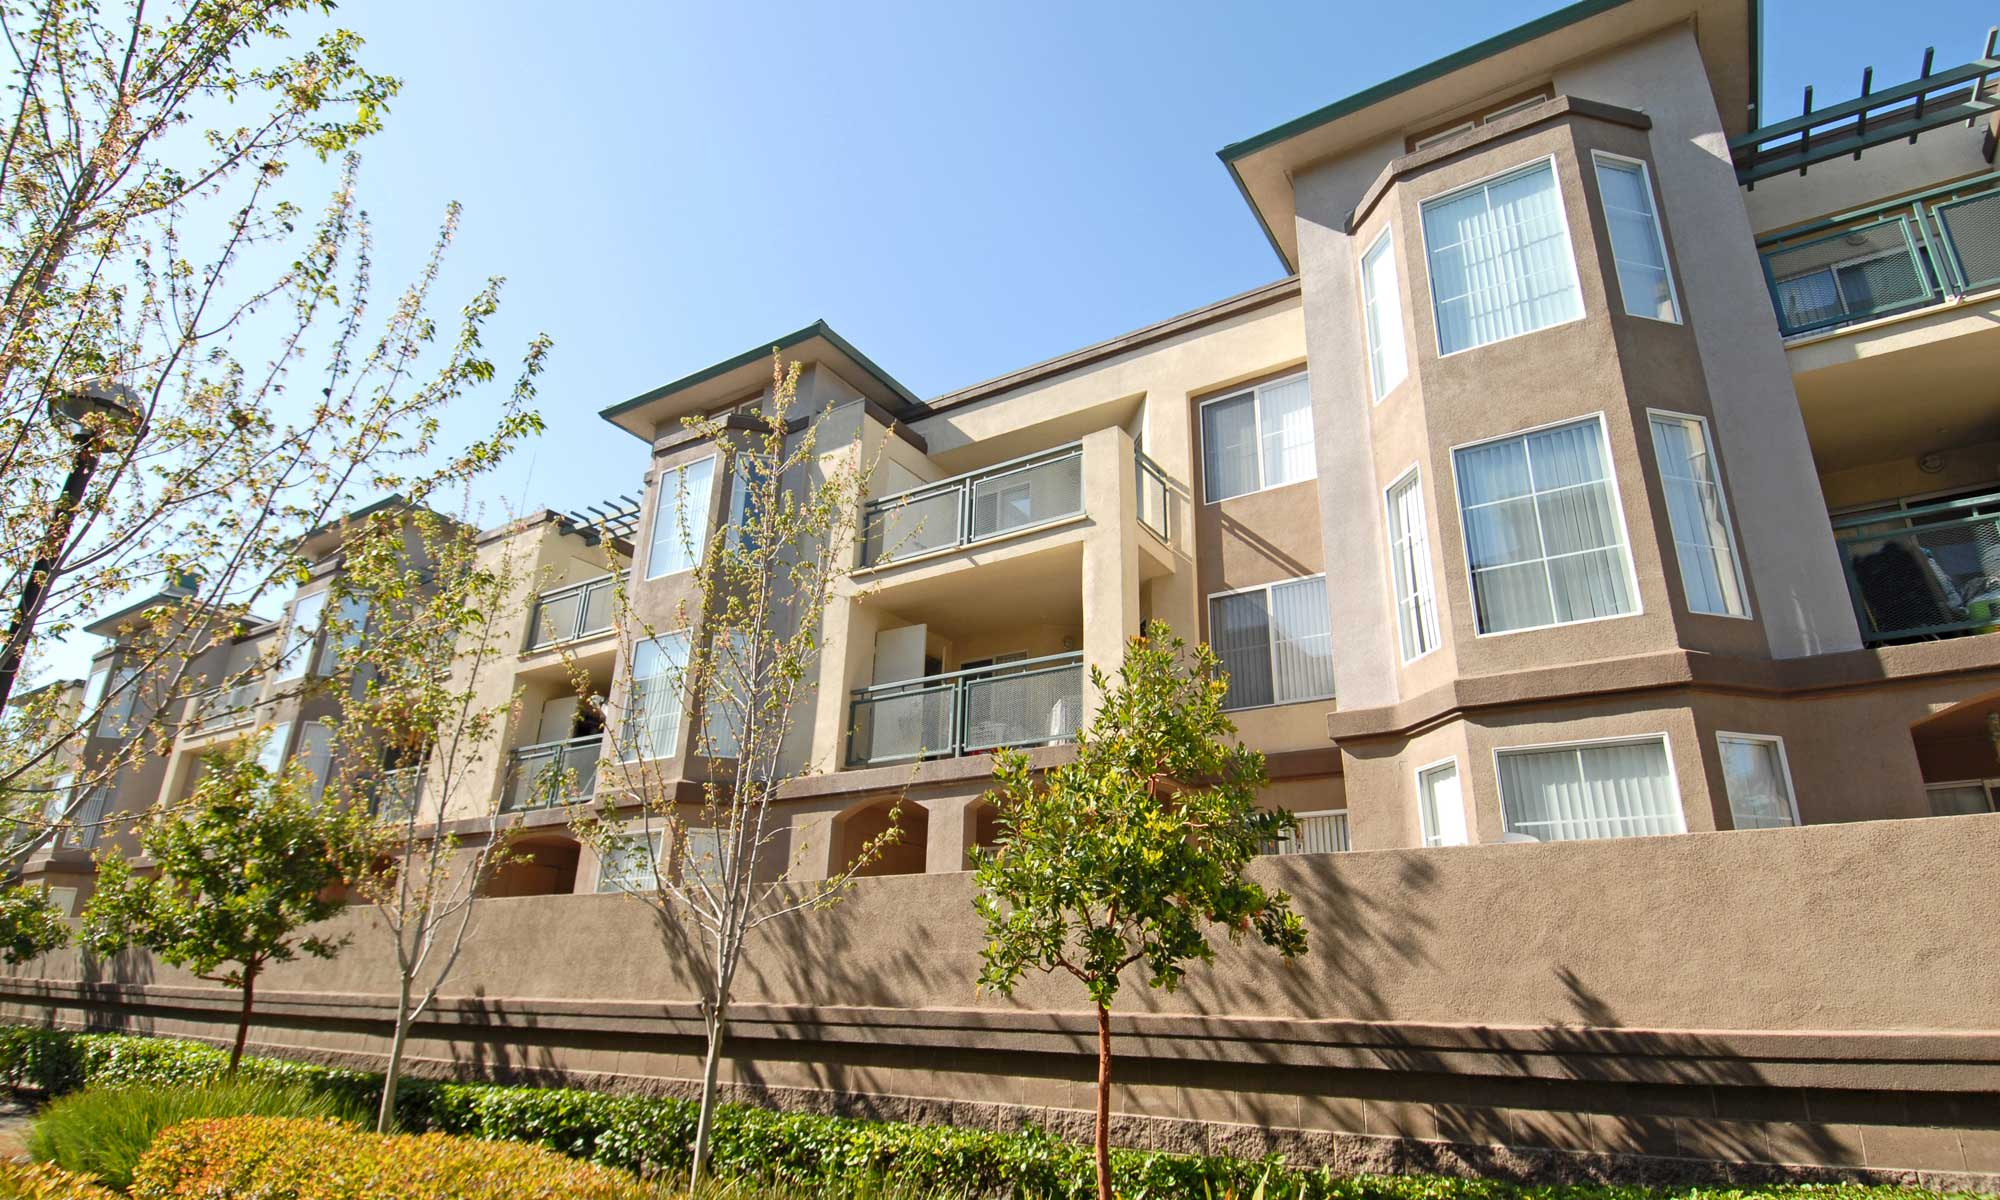 Apartments in San Jose, California